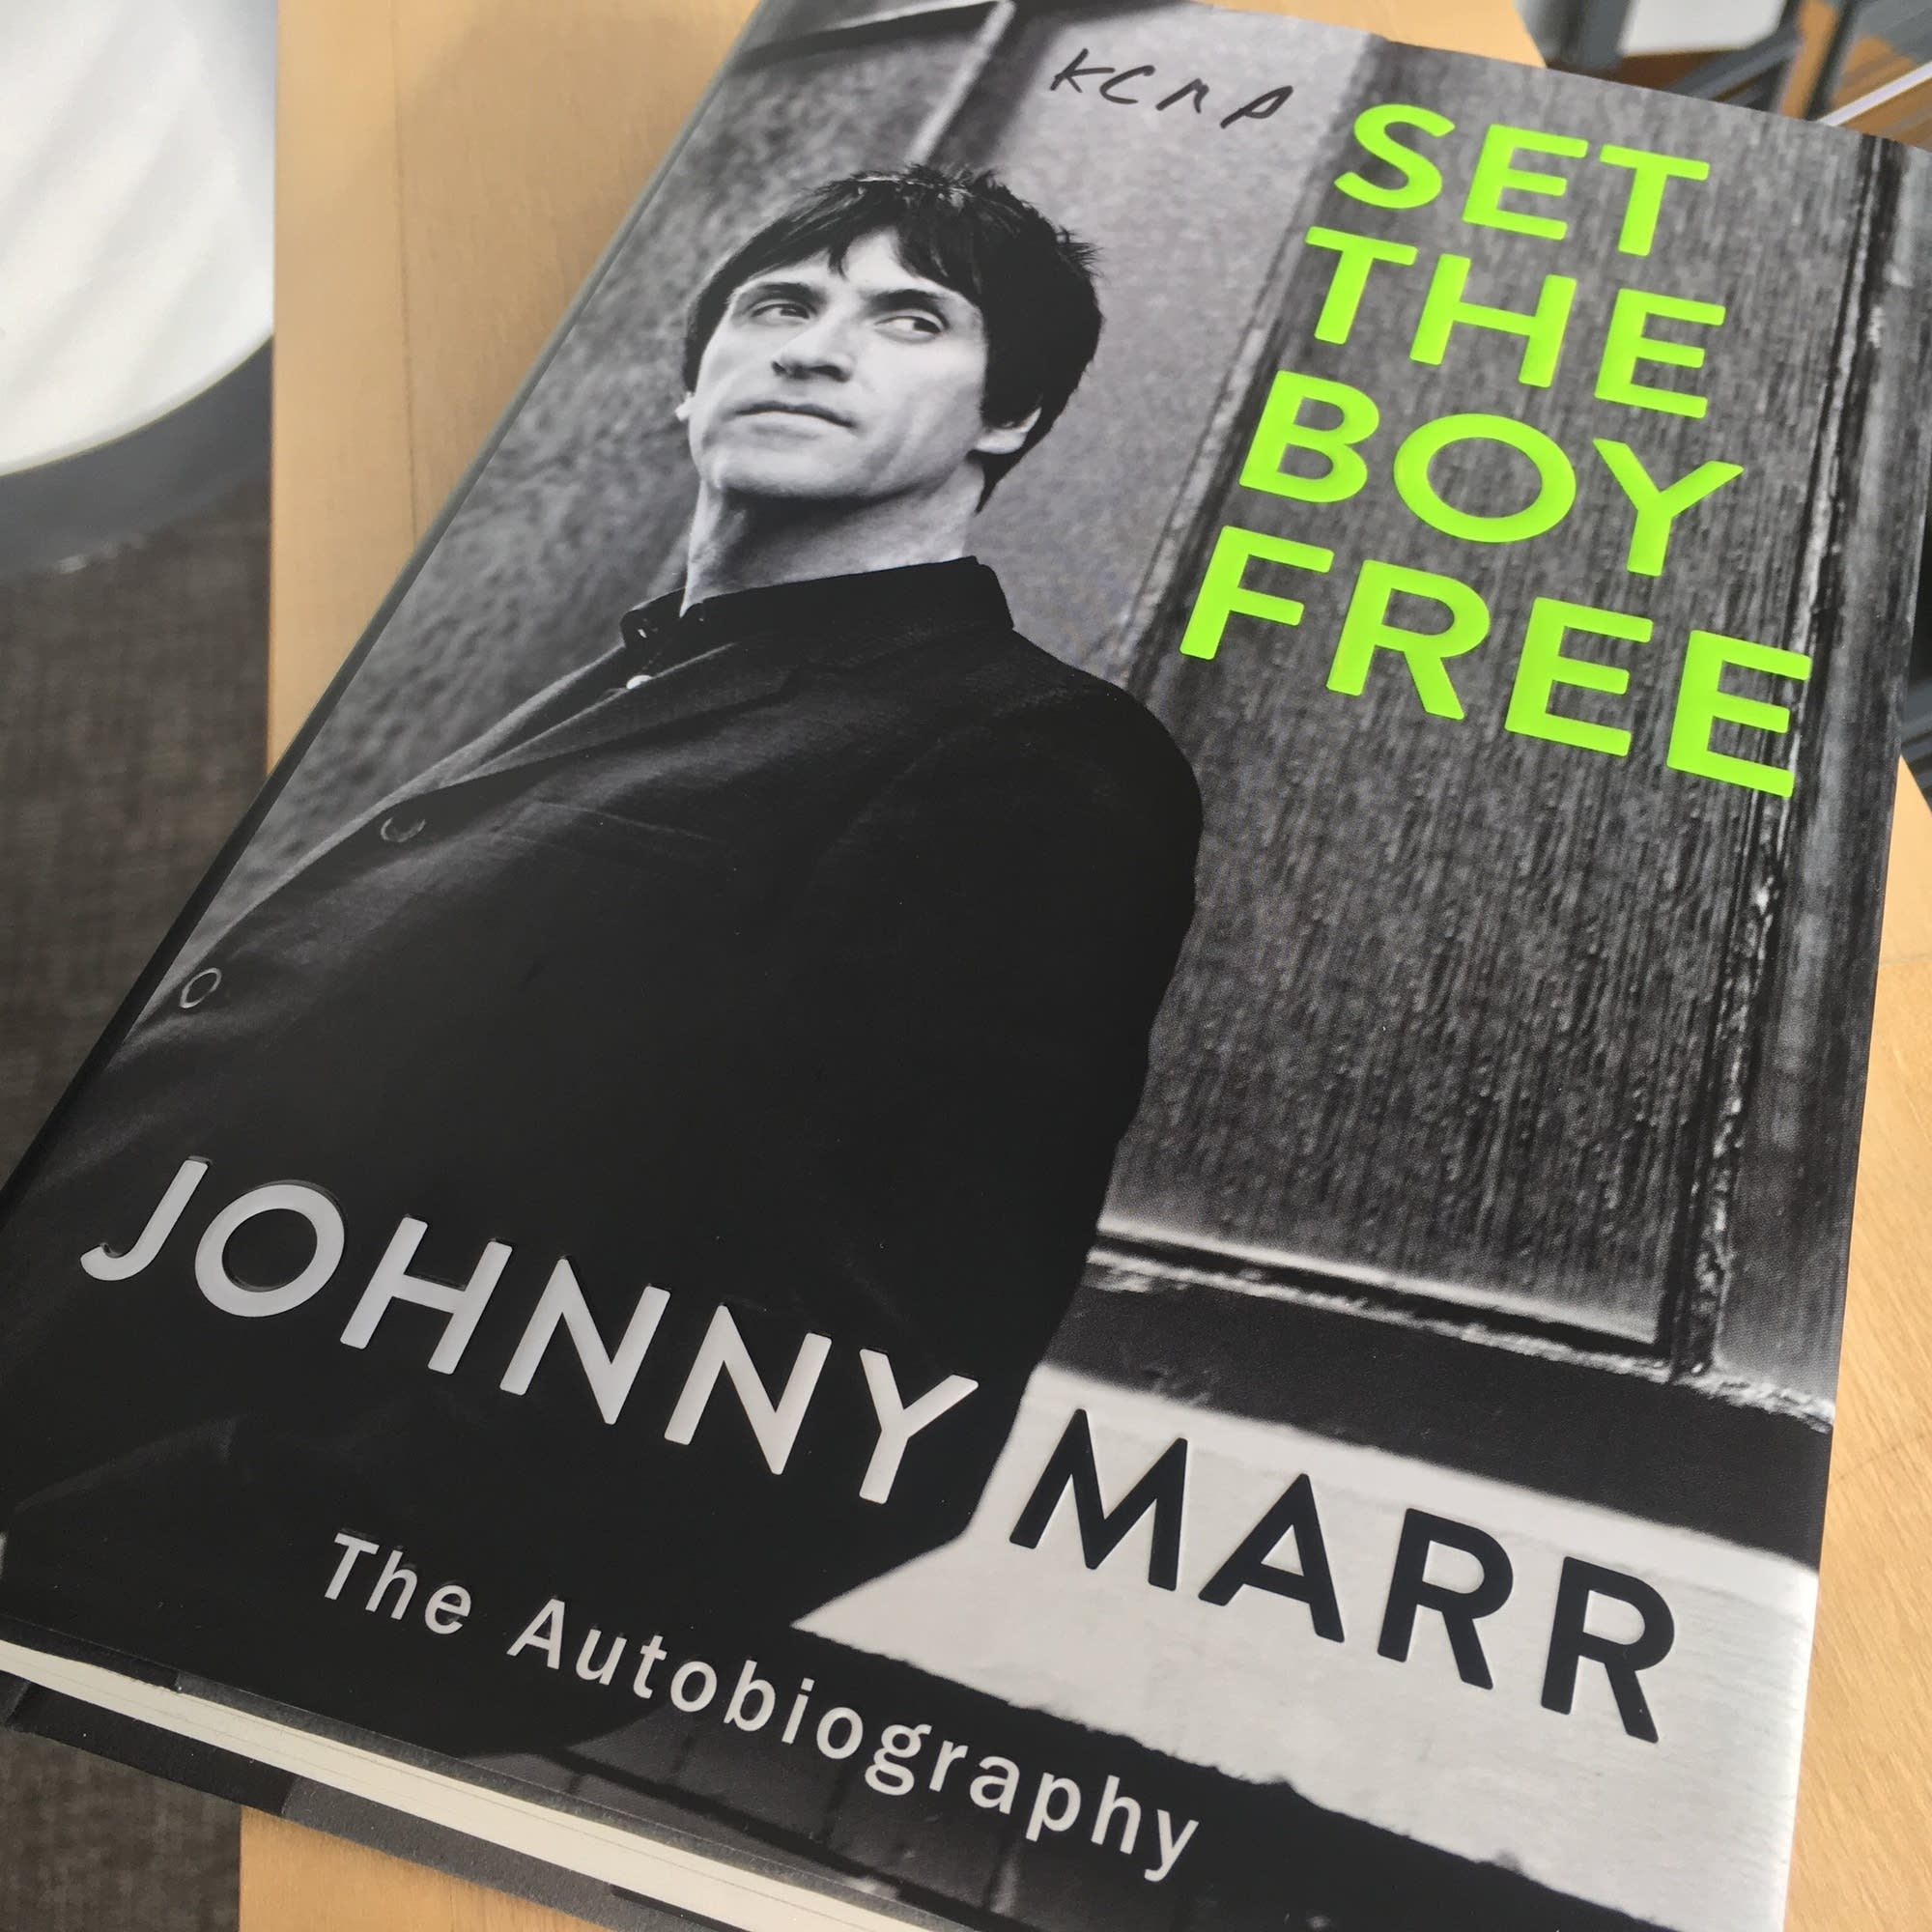 Johnny Marr's 'Set the Boy Free'